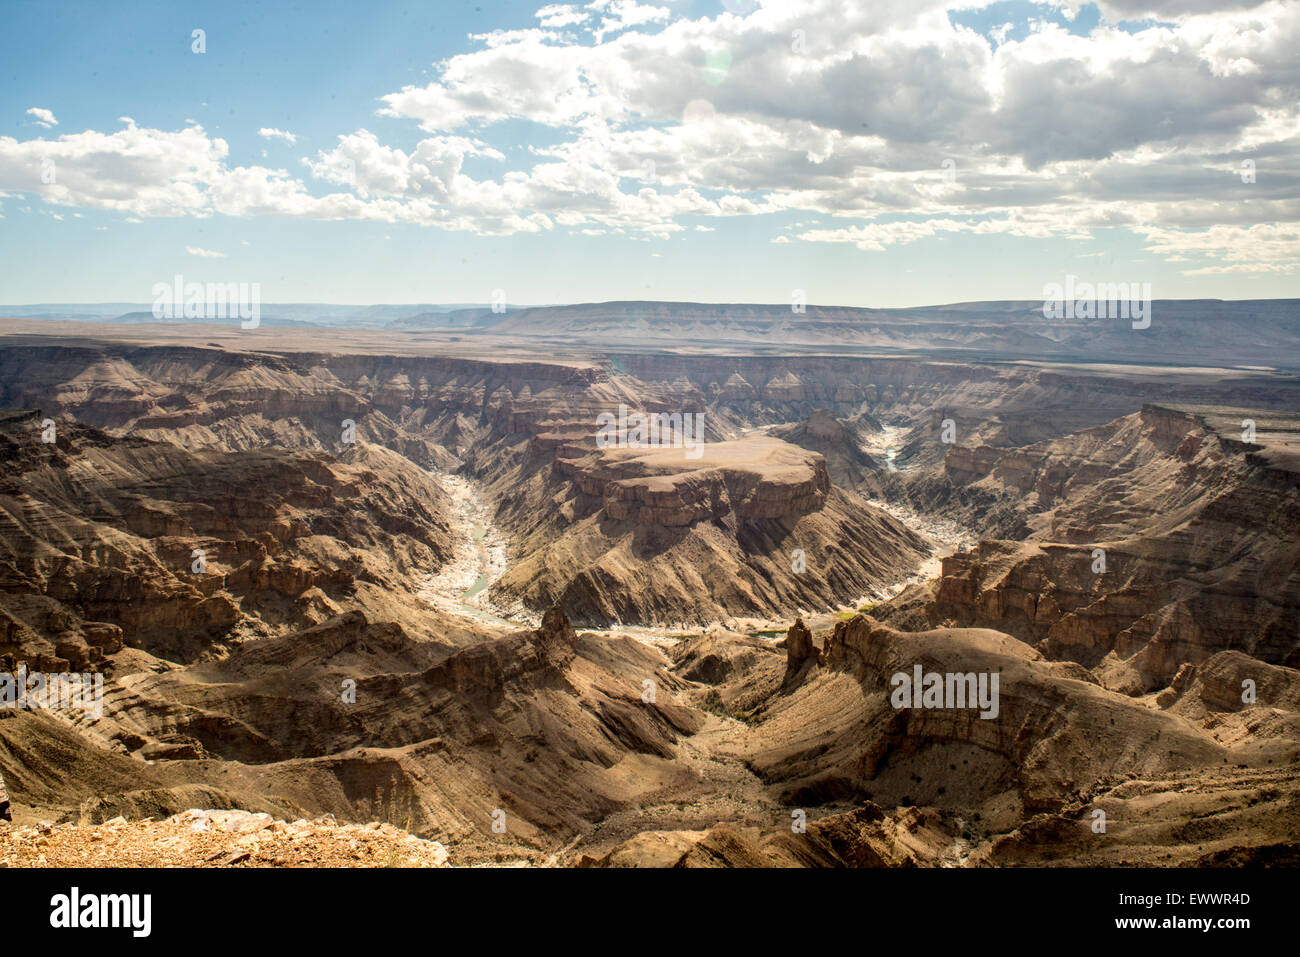 Hobas, Namibie, Afrique - Fish River Canyon, le plus grand canyon en Afrique. Une partie de l'ǀAi-ǀAis/Richtersveld Photo Stock